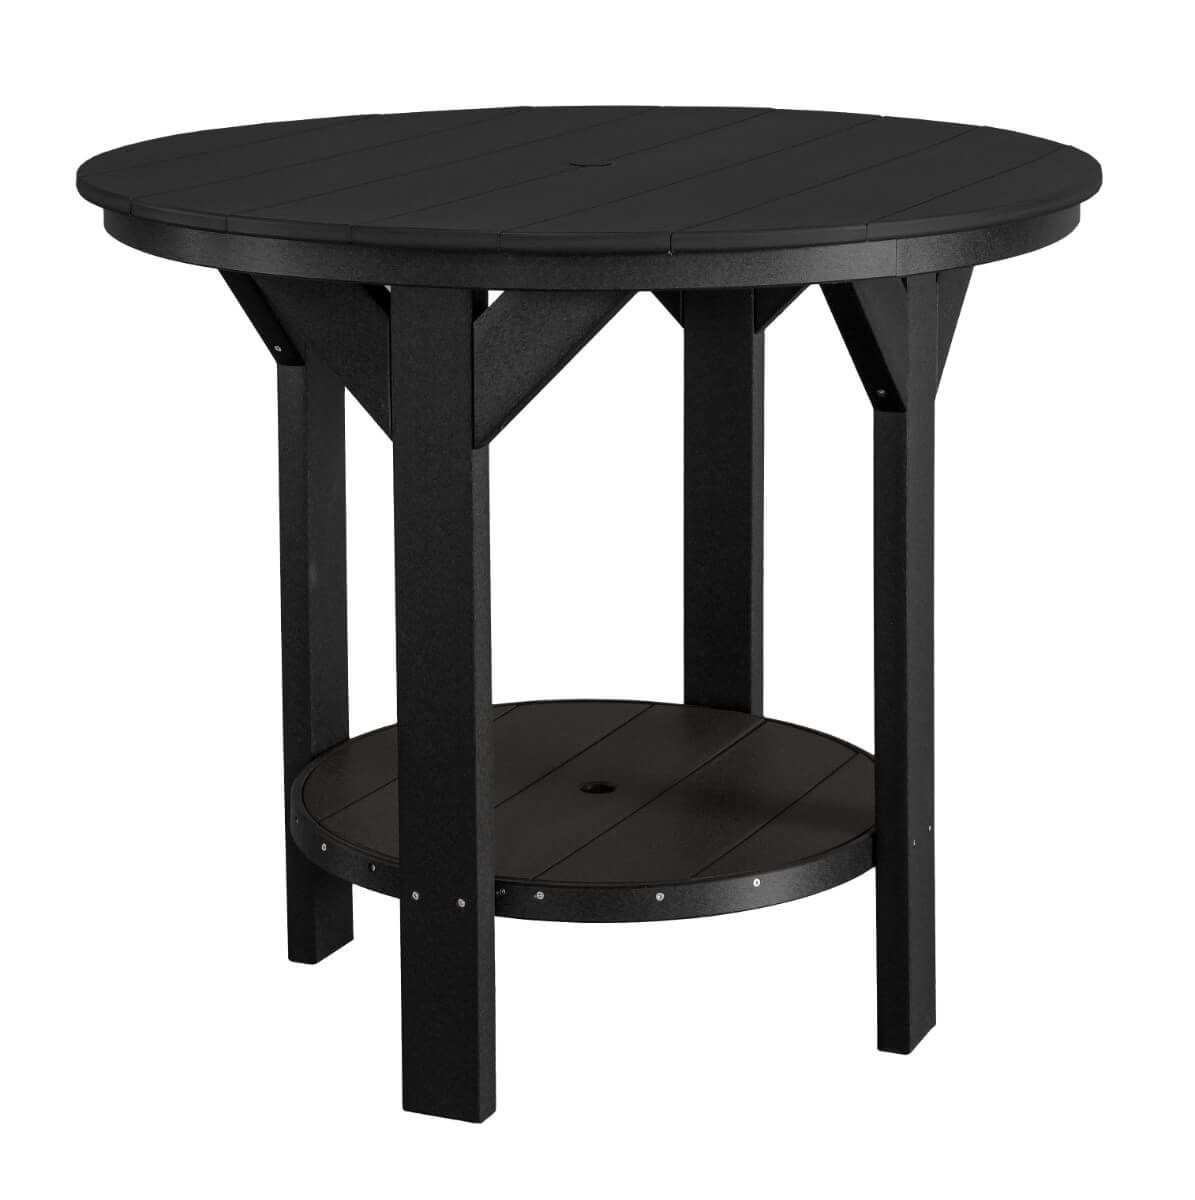 Black Sidra Outdoor Pub Table